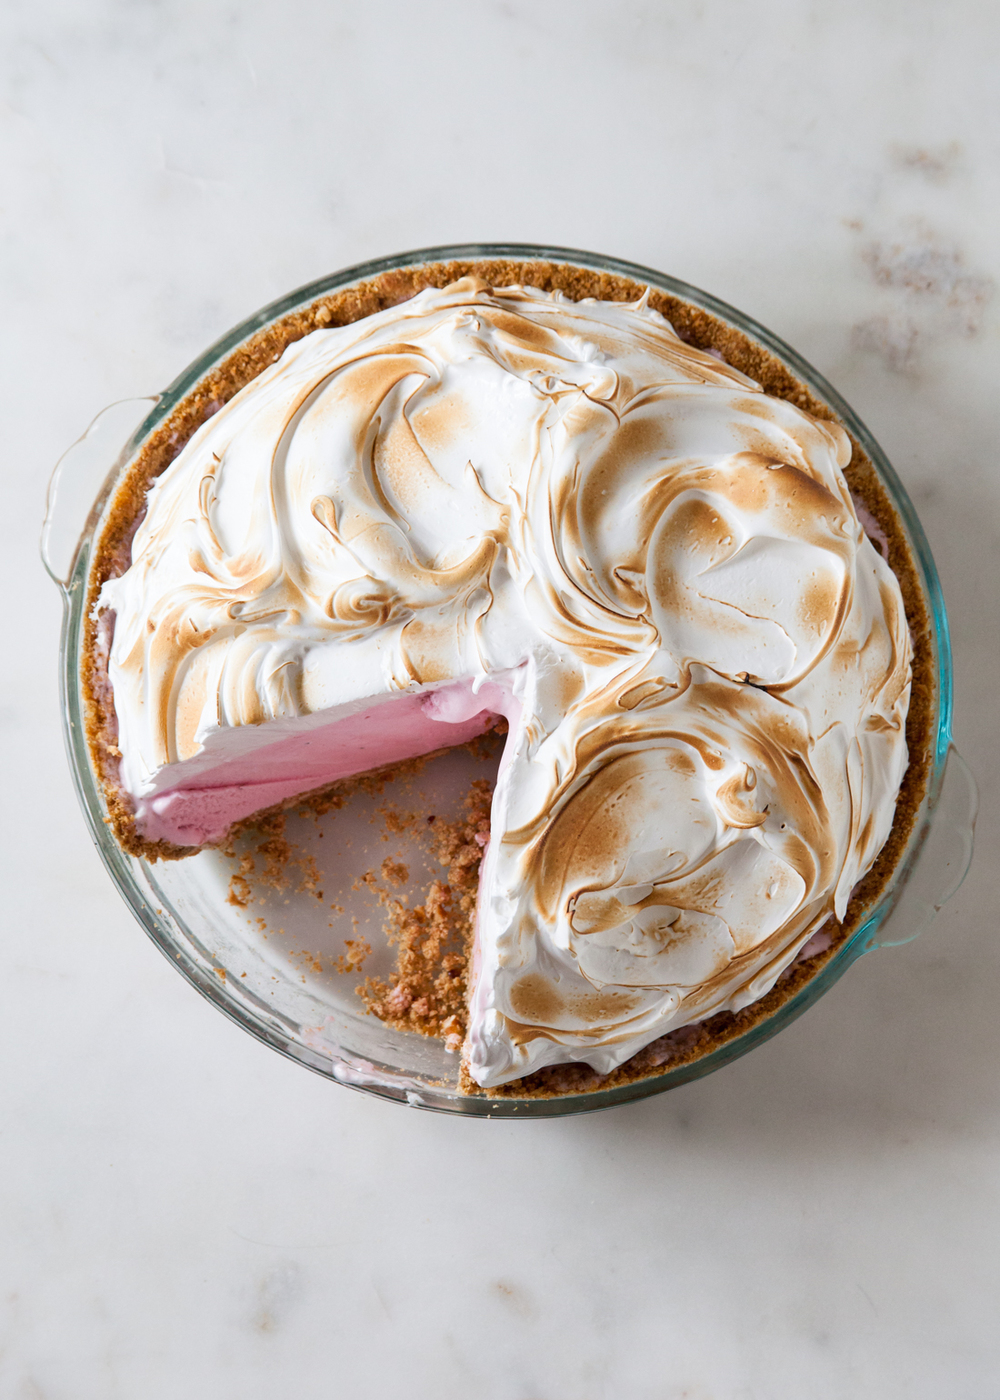 Baked Alaska Ice Cream Pie with a pretzel crusted and toasted meringue topping.